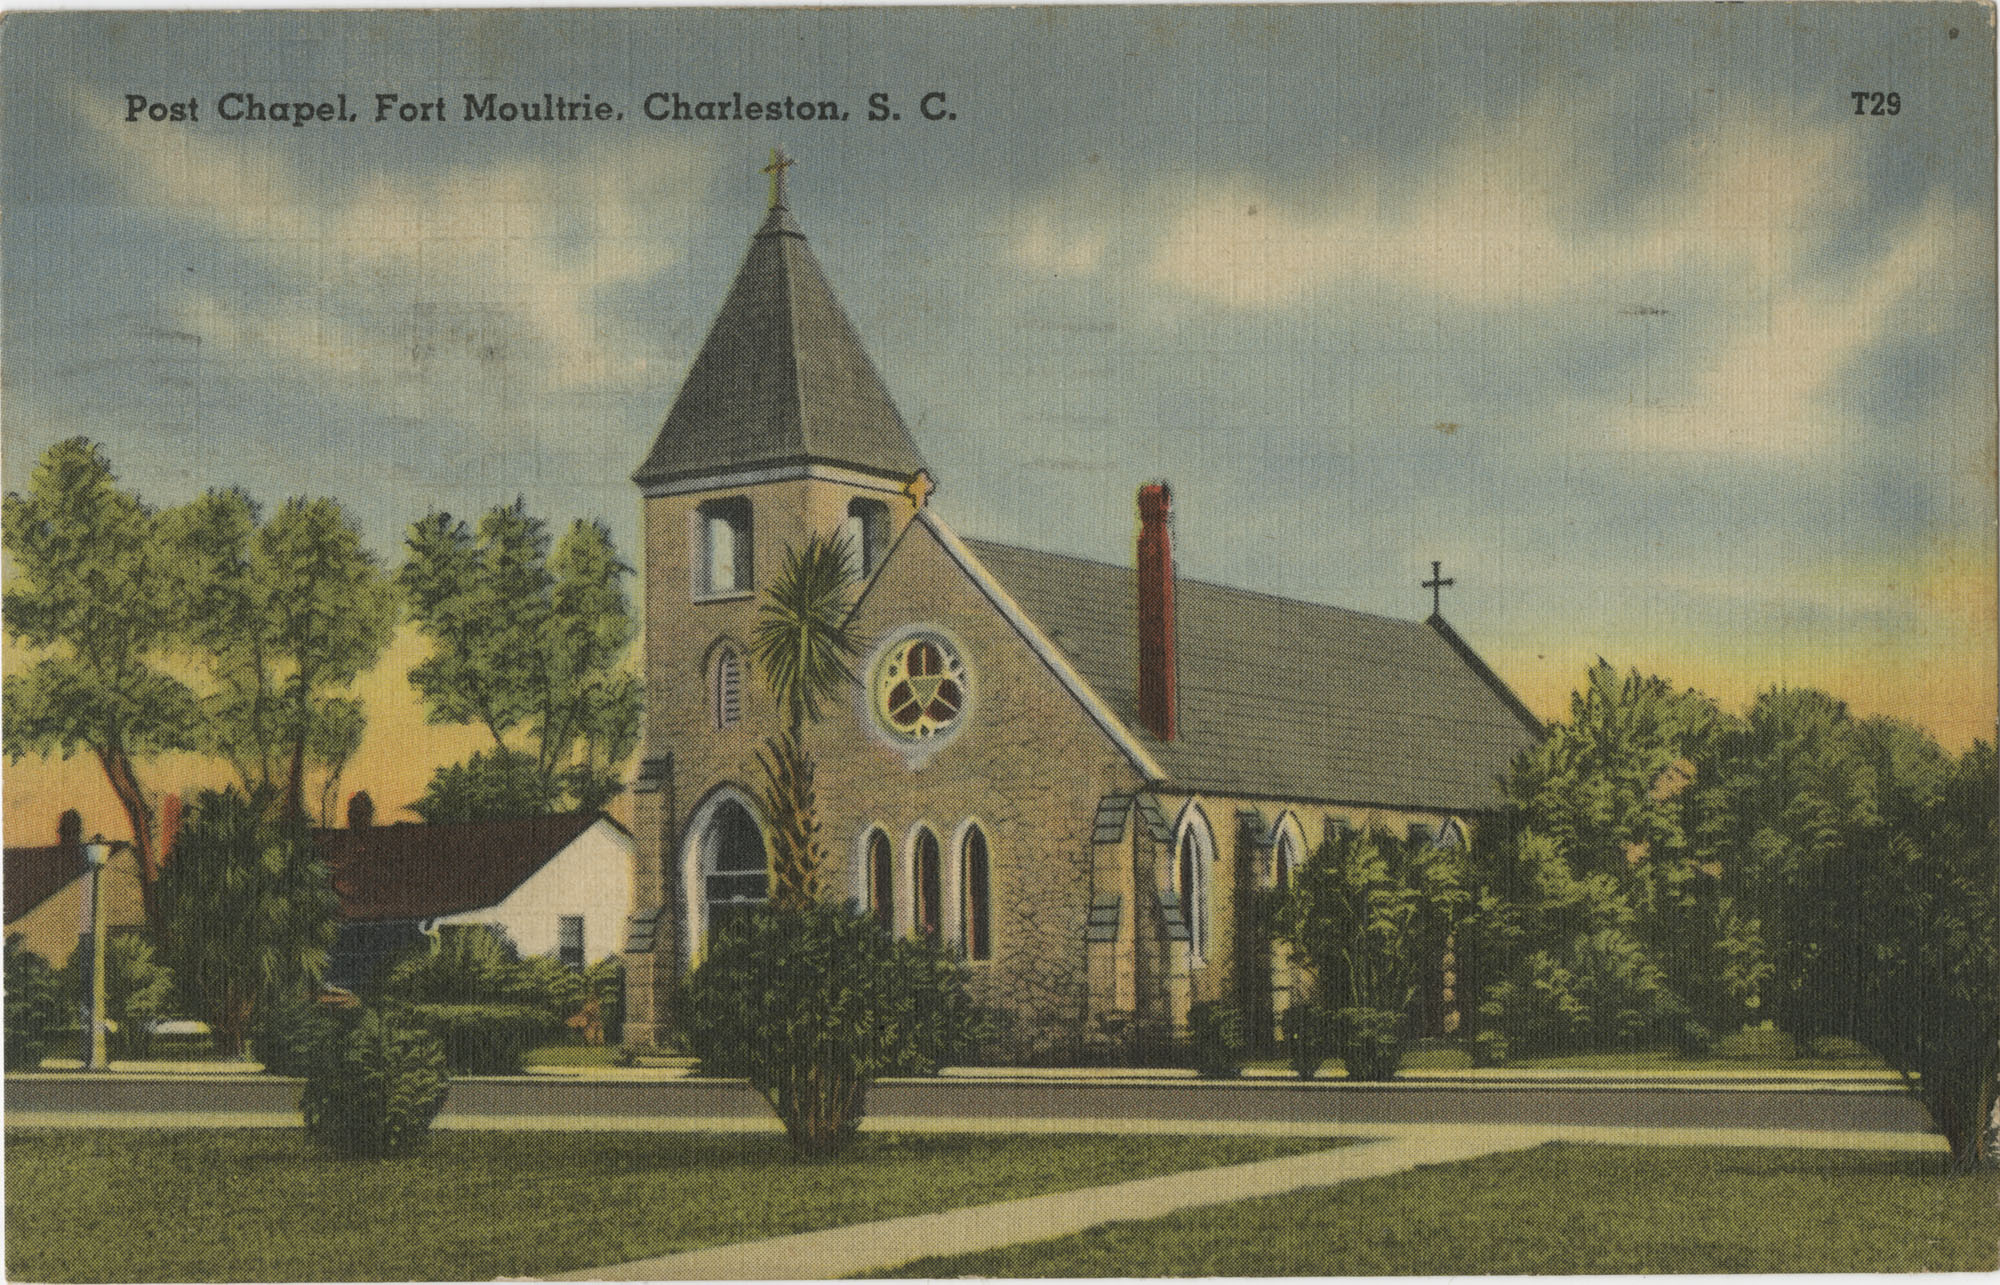 Post Chapel, Fort Moultrie, Charleston, S.C.